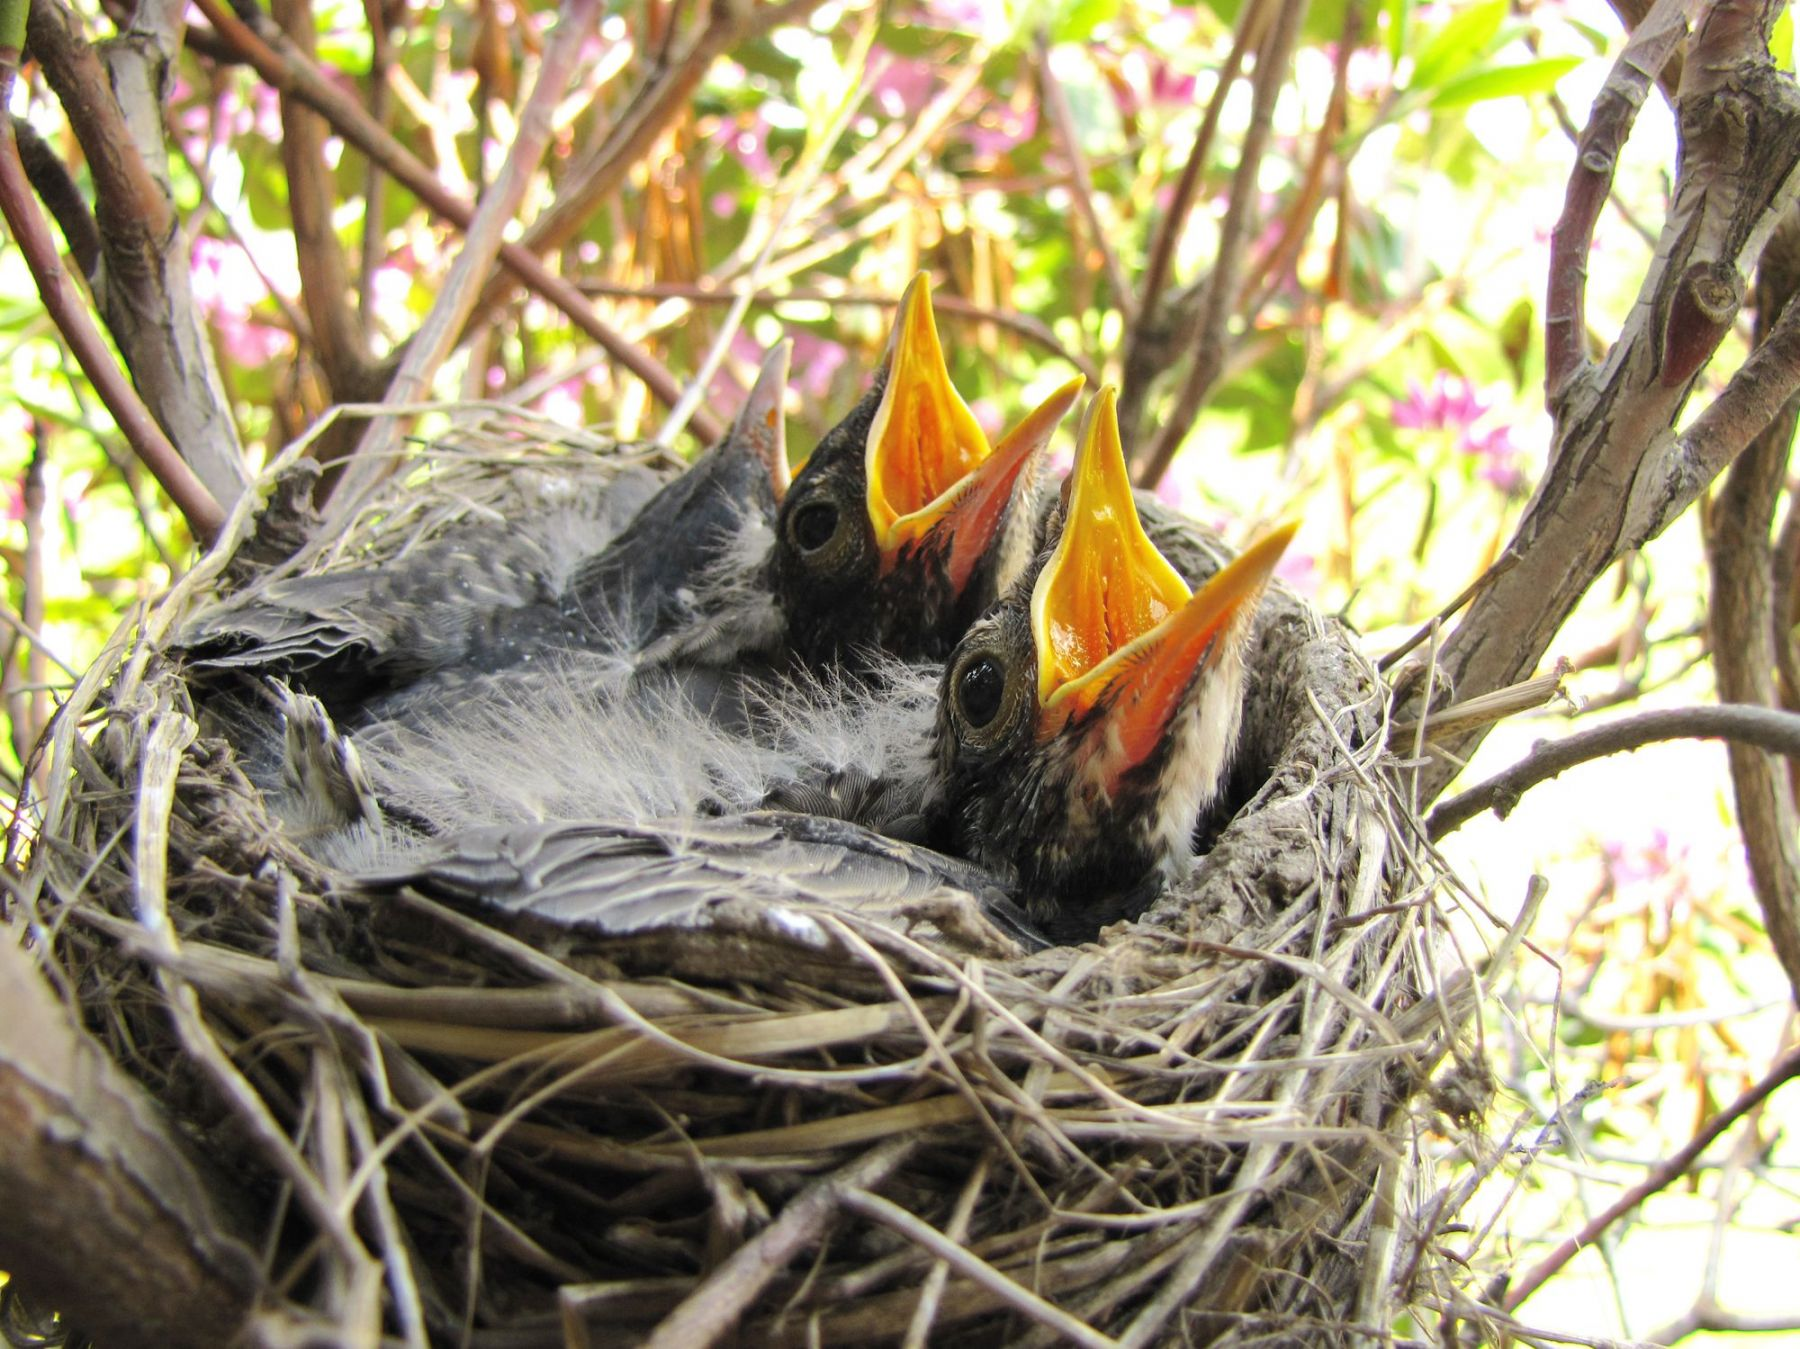 Spring baby animals are easy prey for outdoor pets